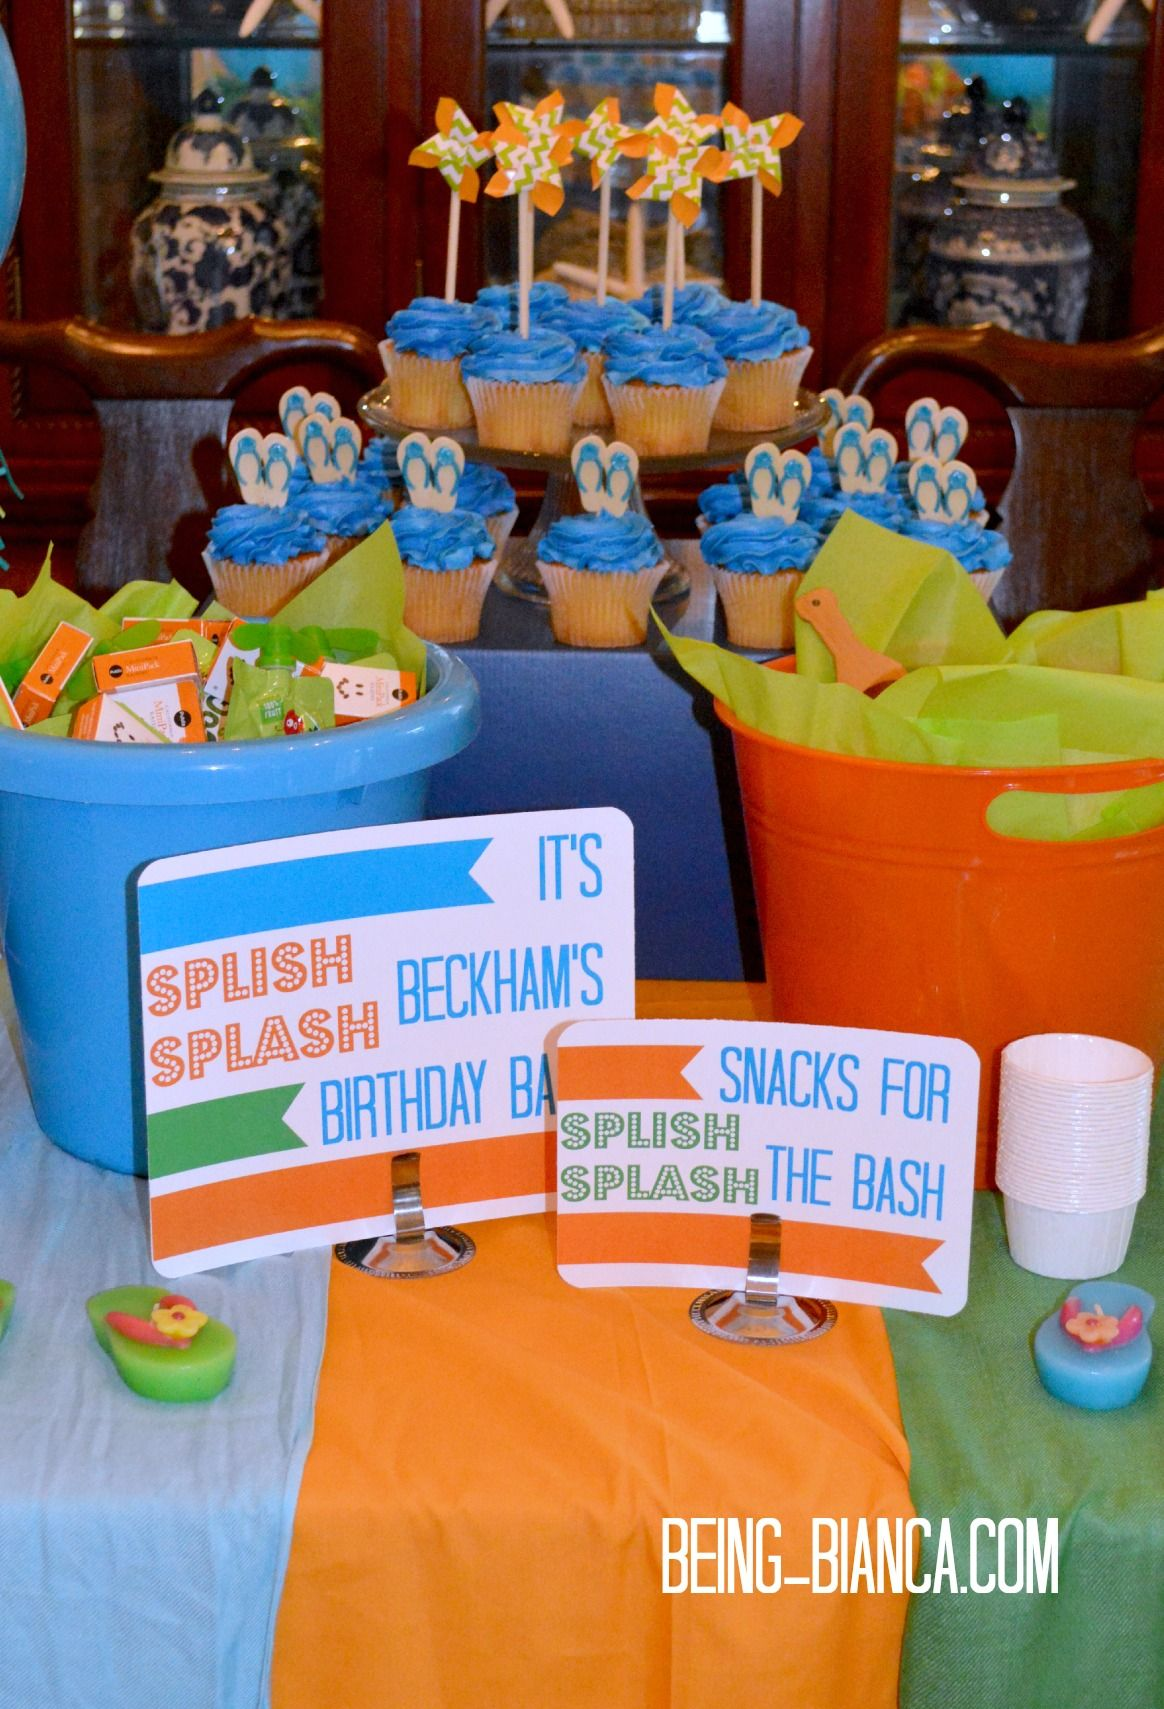 Pool Party Snack Ideas 6th birthday pool party five heart home Pool Party Ideas With A Plan B The Not So Splish Splash Birthday Bash